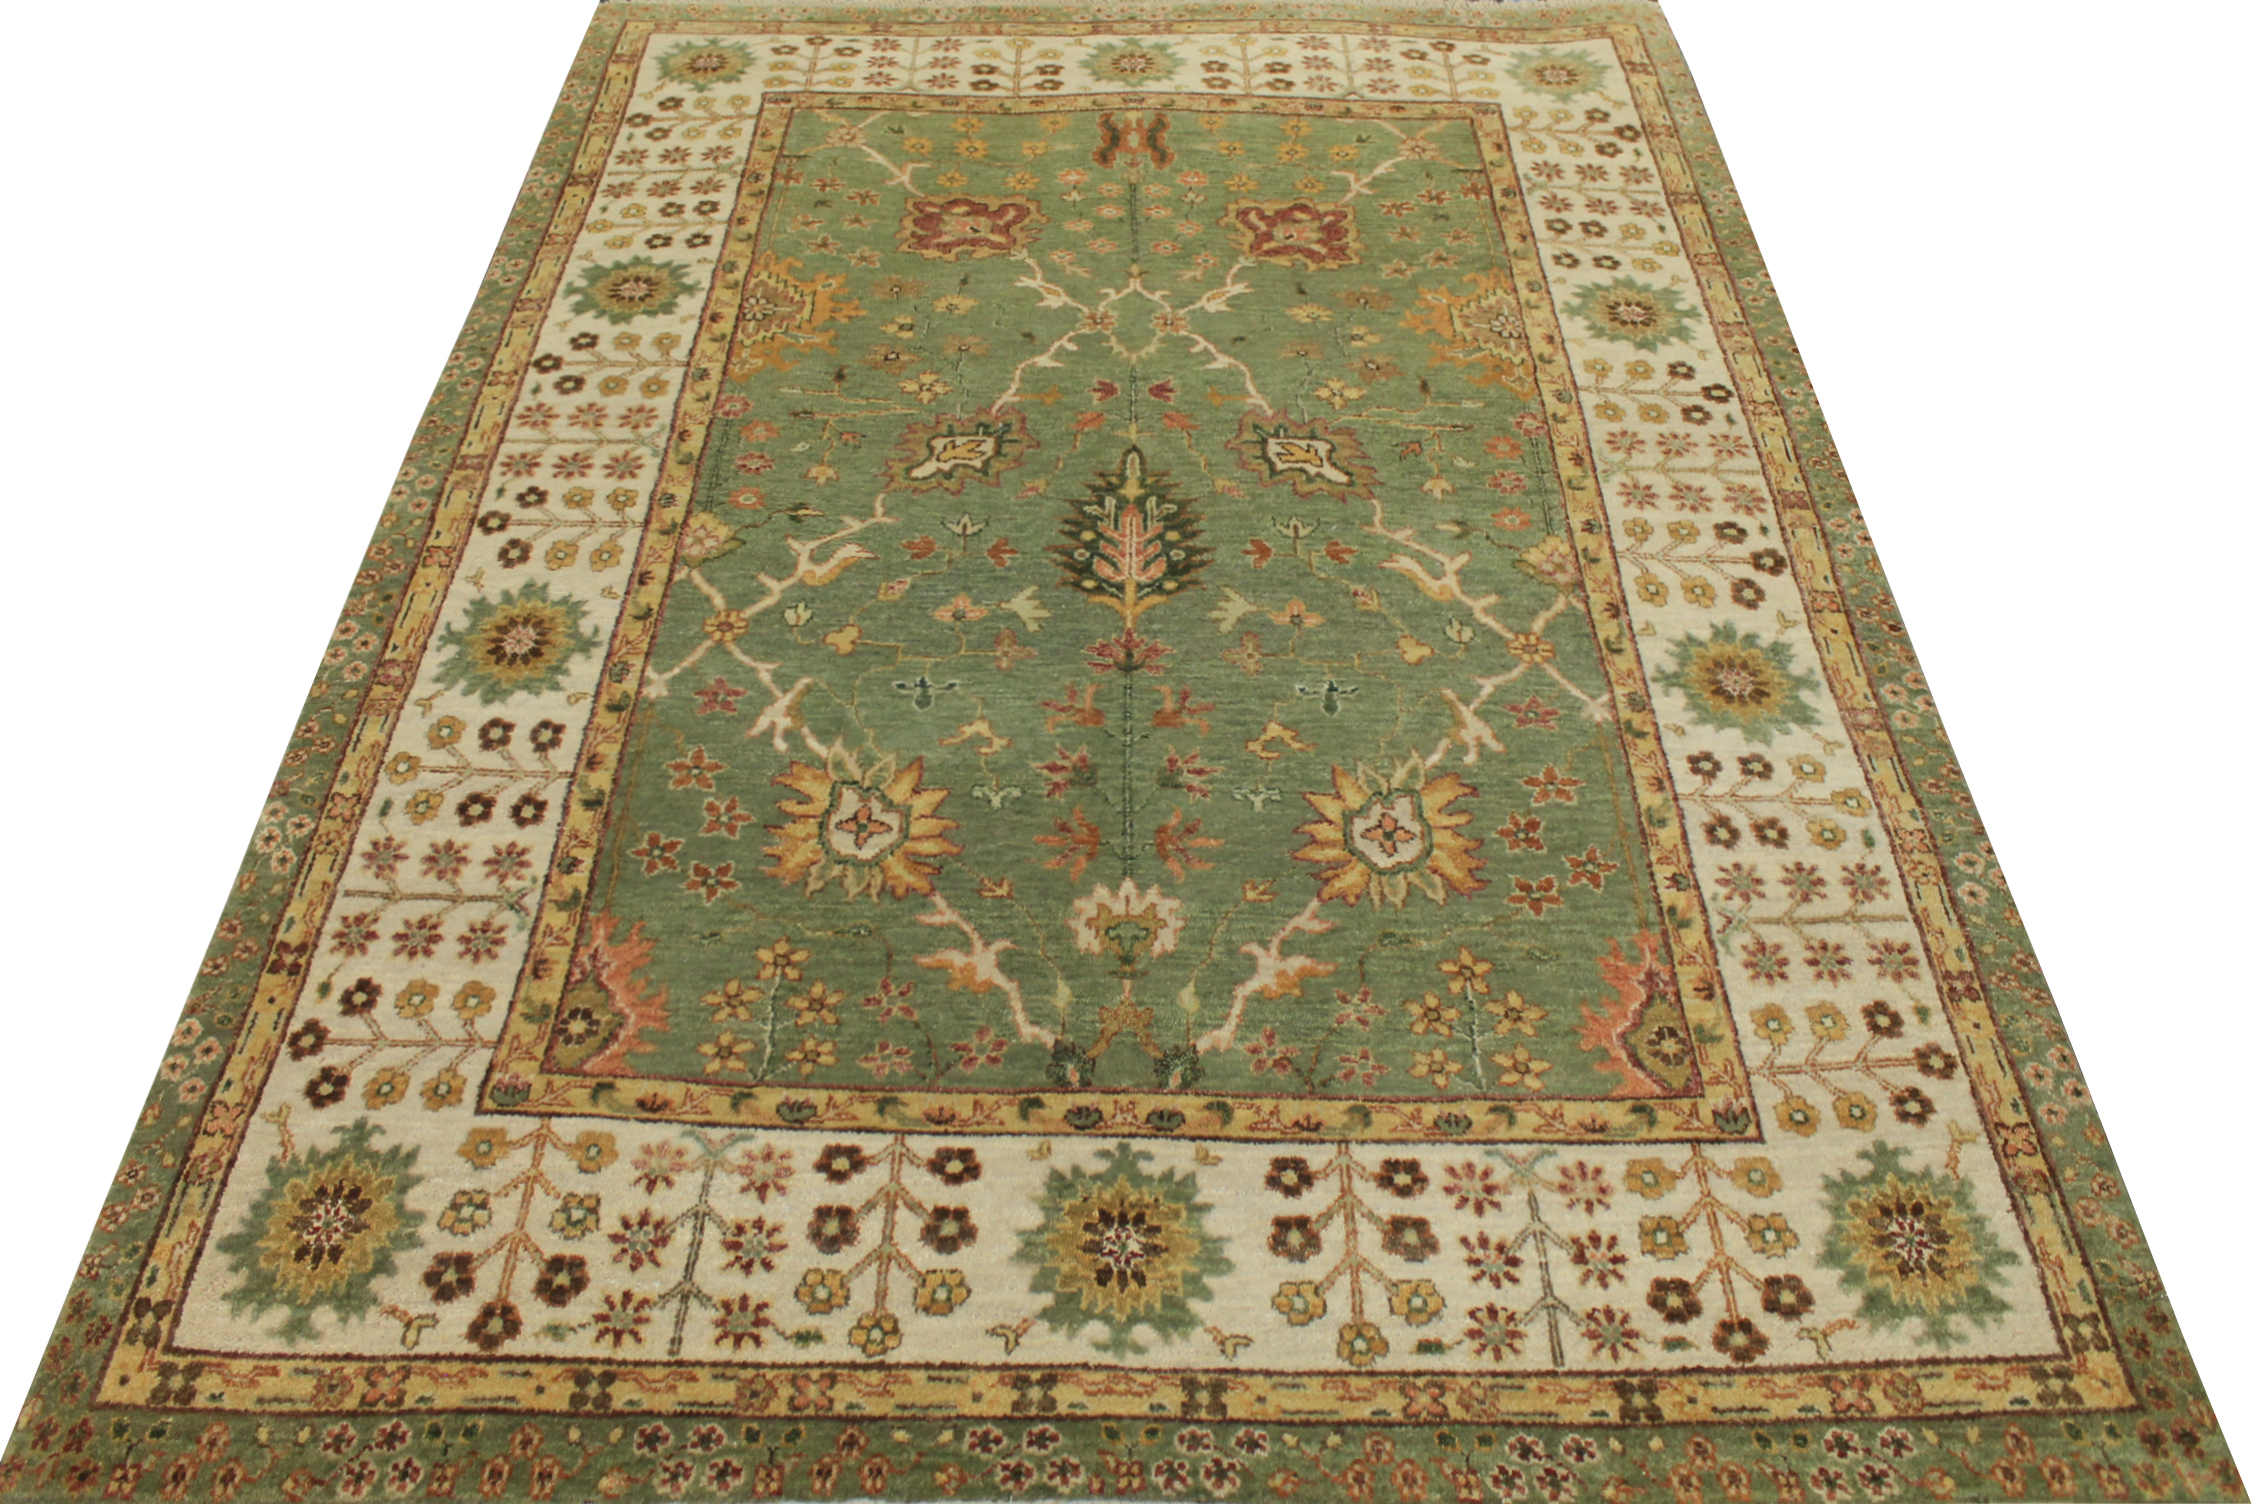 5x7/8 Traditional Hand Knotted Wool Area Rug - MR18677